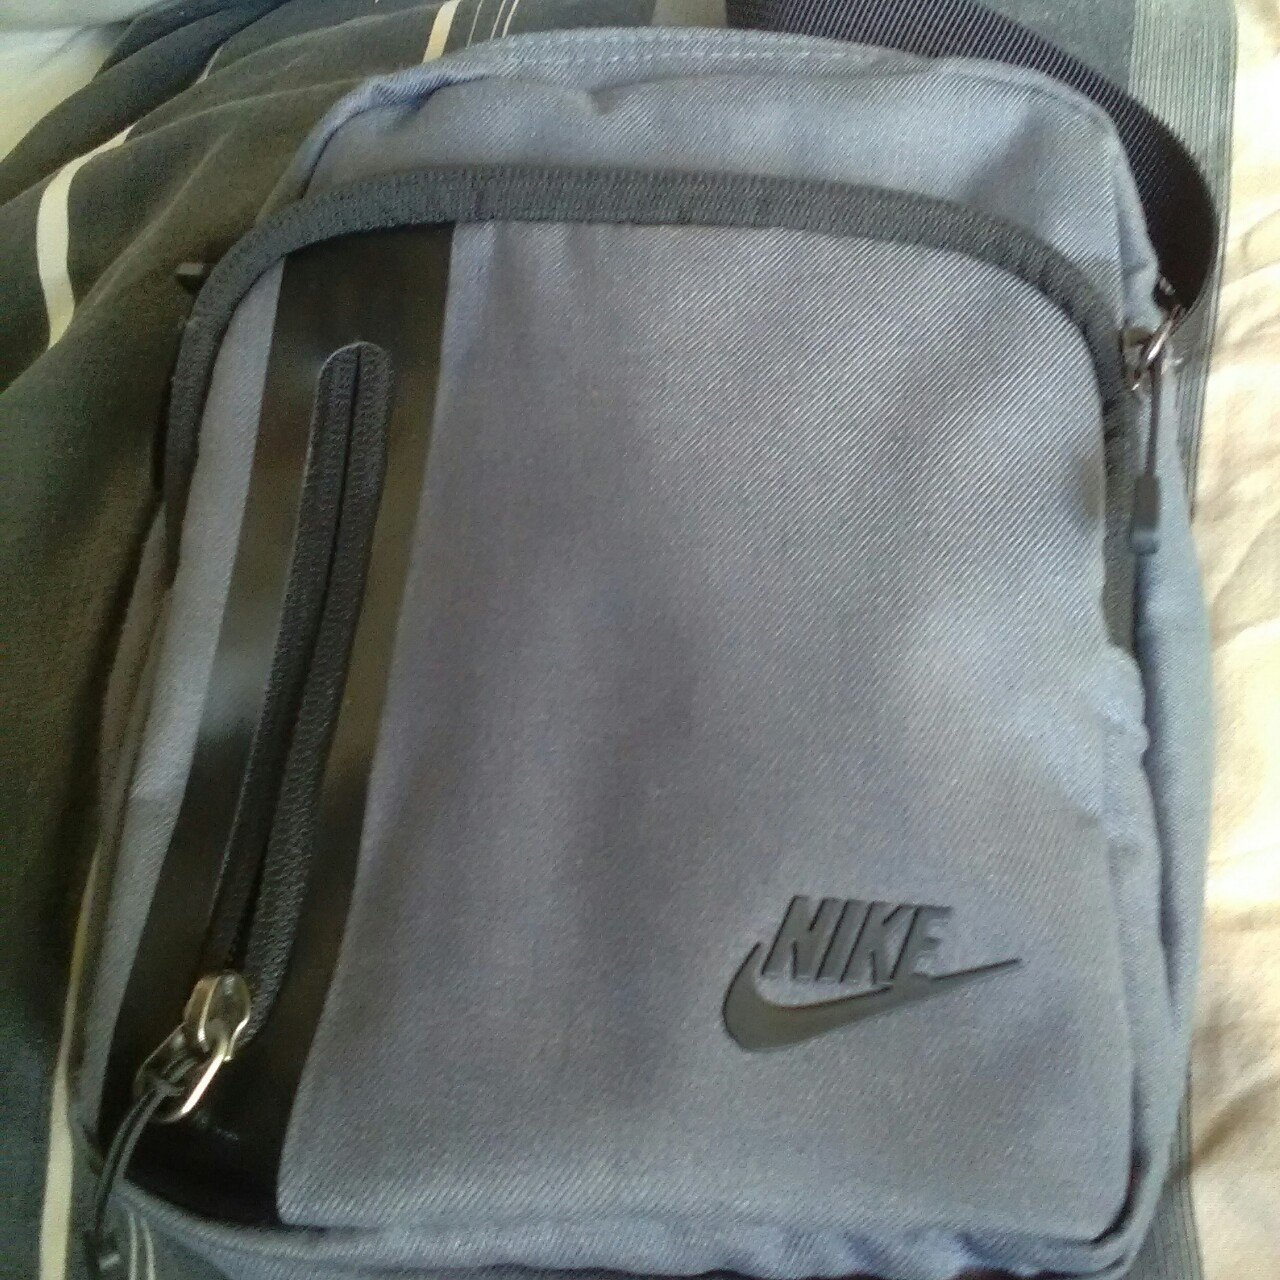 Nike man shoulder bag for sale. Great condition however need - Depop ea56e4a260be